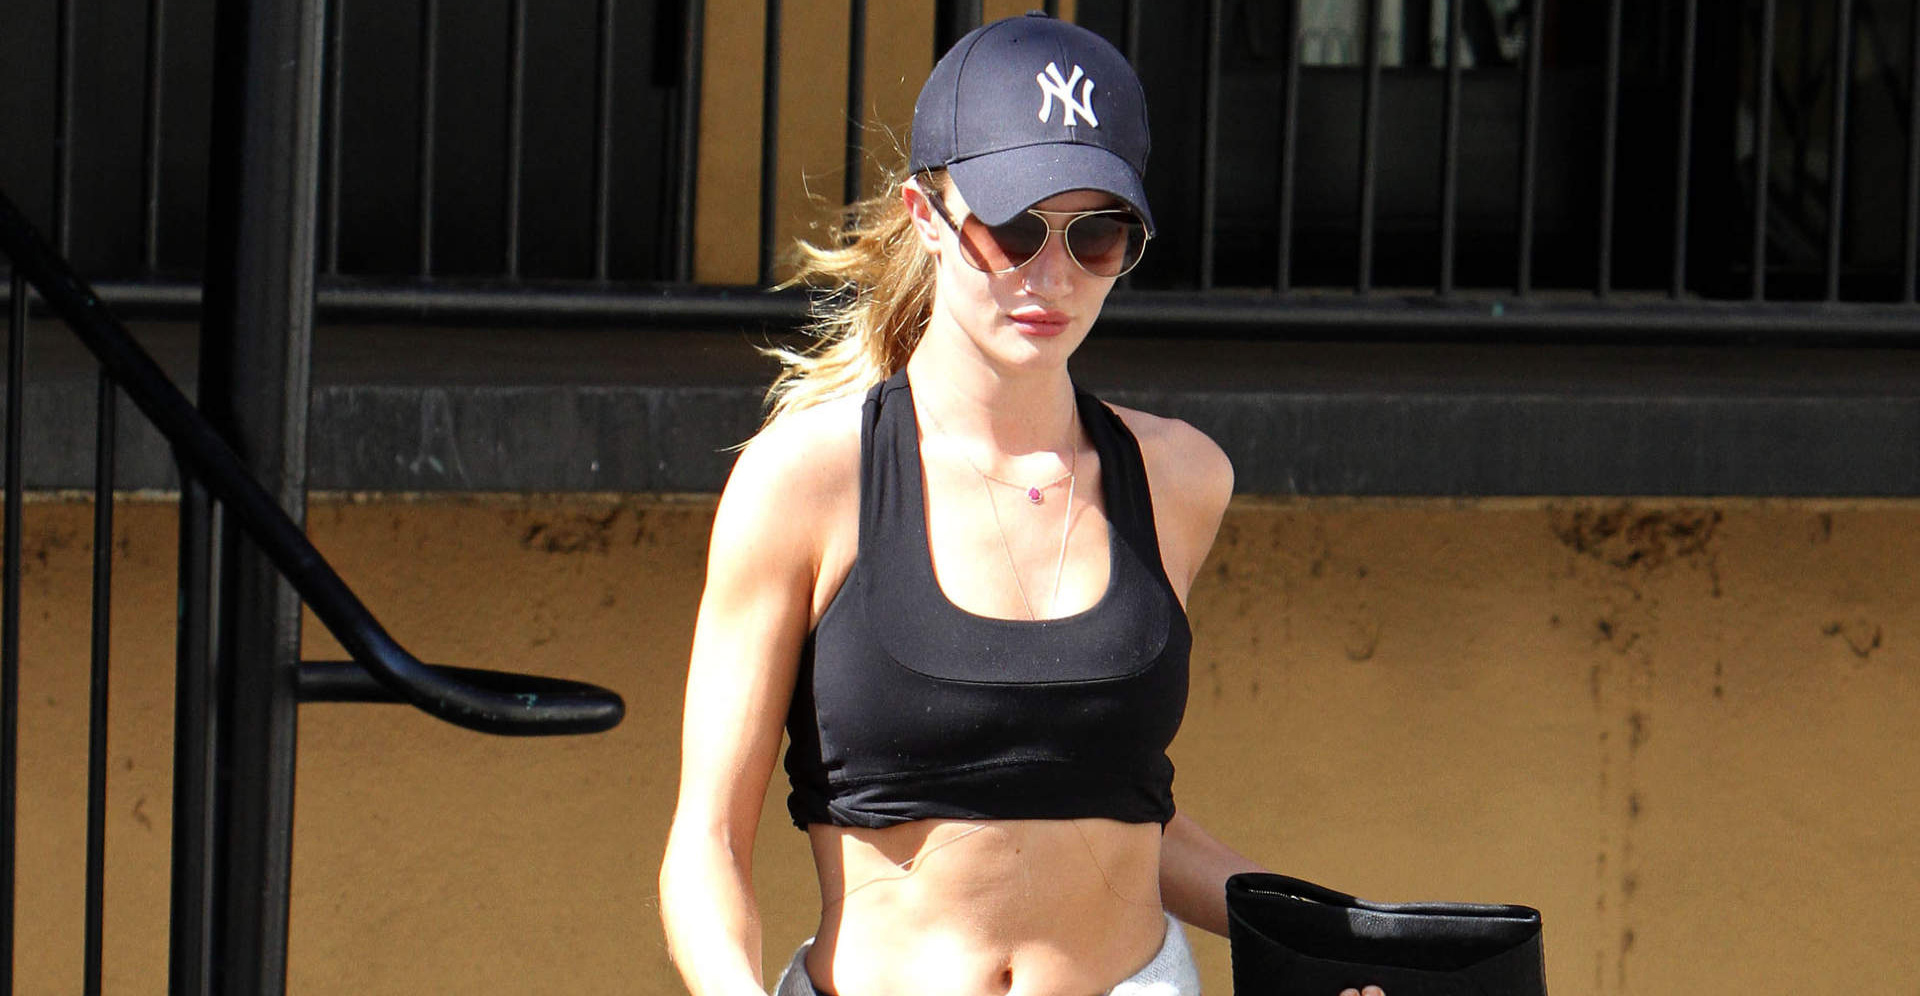 rosie-huntington-whiteley-gym